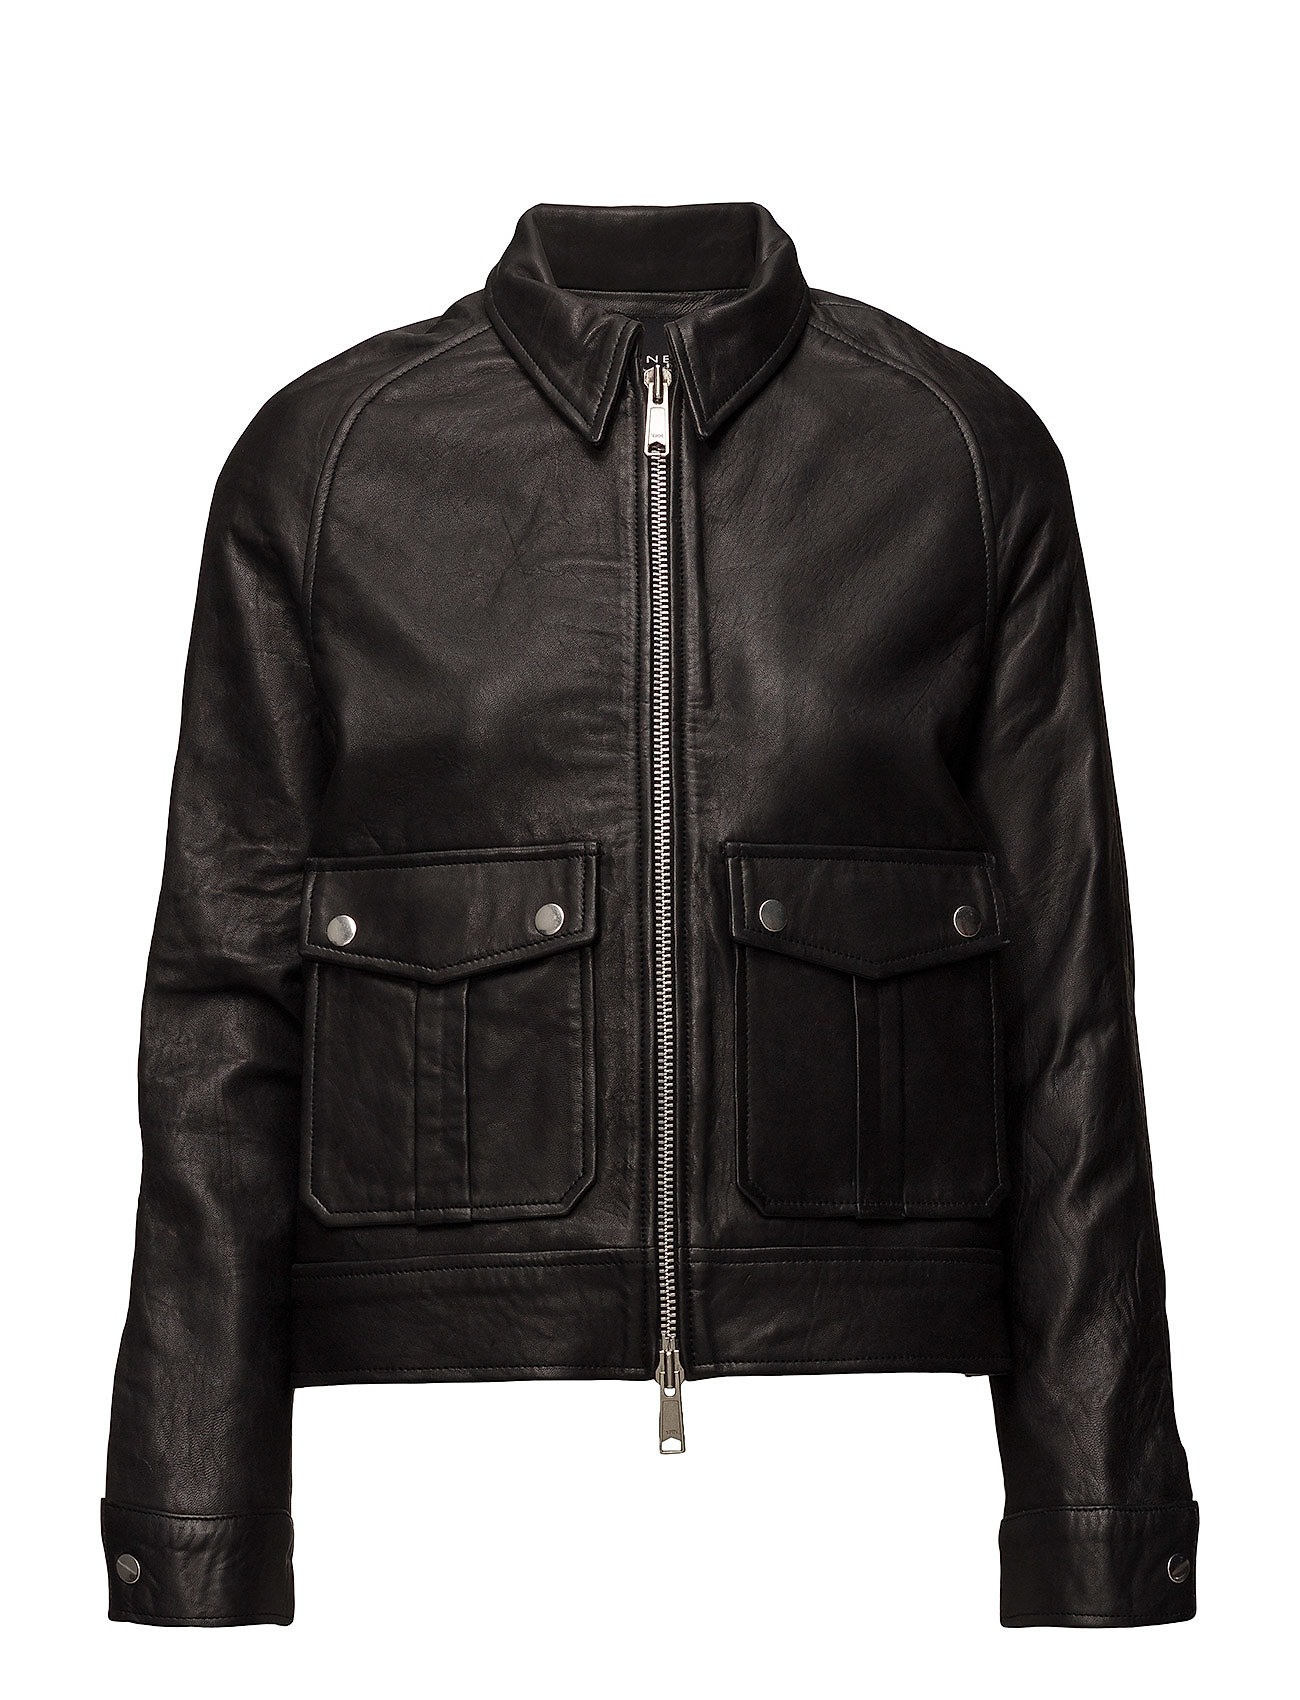 Image of Smith Leather Jacket (2956916871)